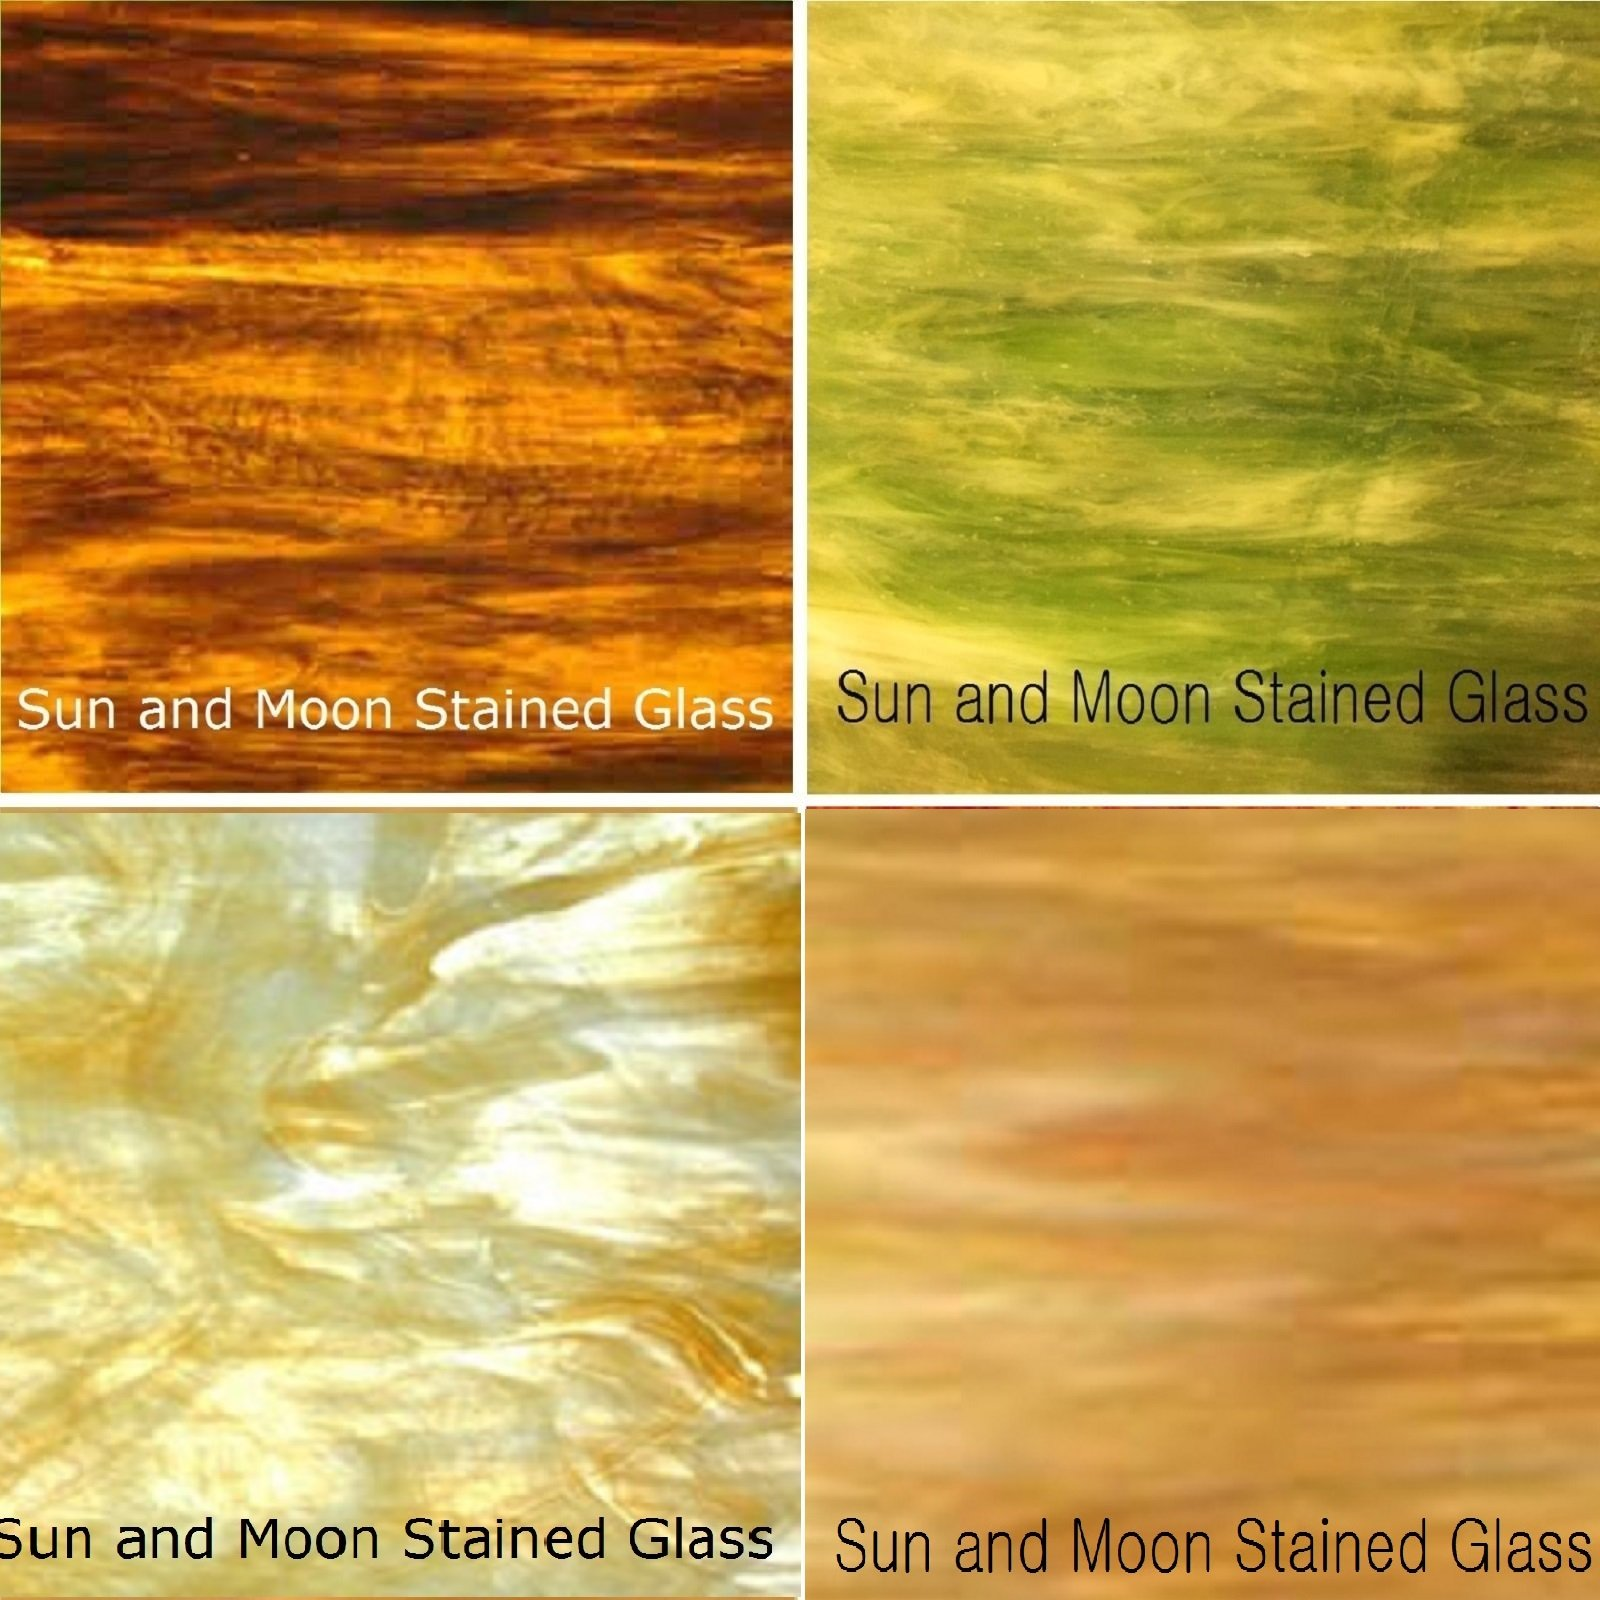 Autumn Flavor Wissmach Stained Glass Sheet Pack by Sun and Moon Stained Glass